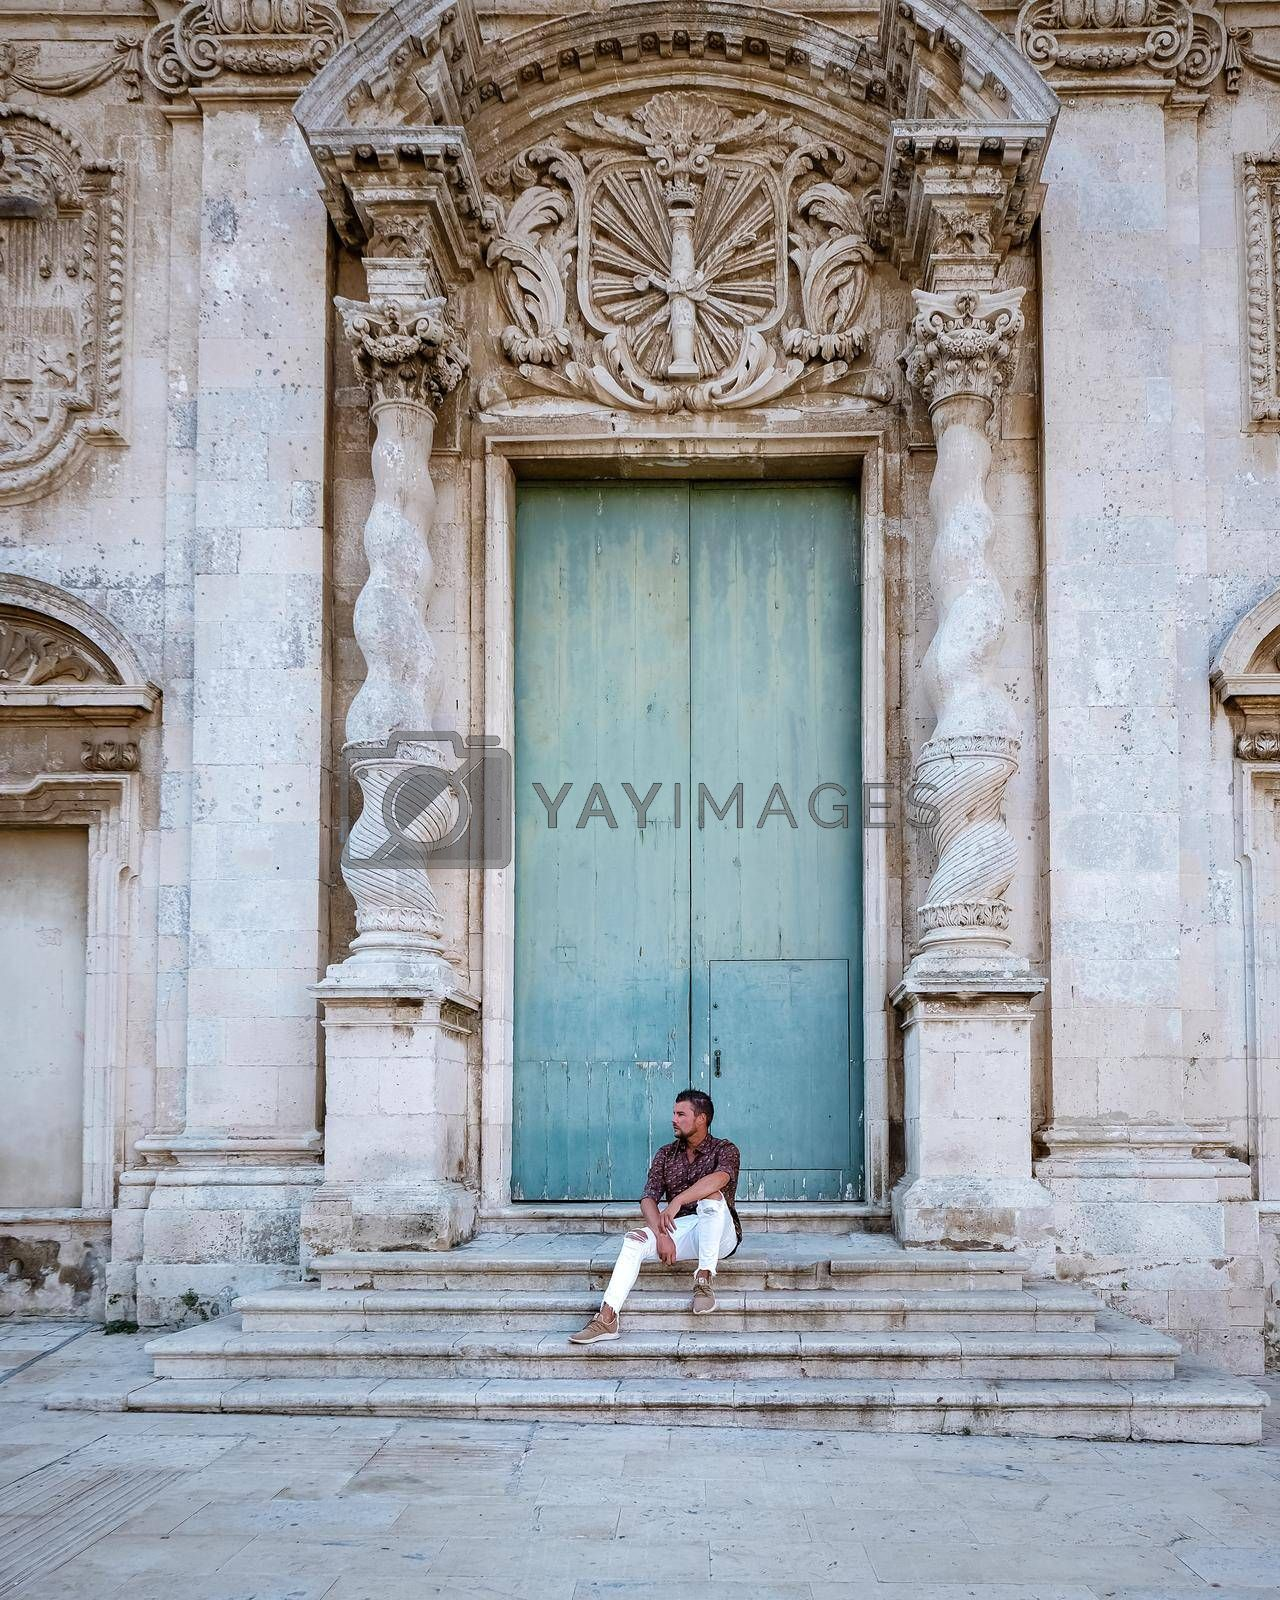 men on citytrip, Ortigia in Syracuse Sicily Italy in the Morning. Travel Photography from Syracuse, Italy on the island of Sicily.